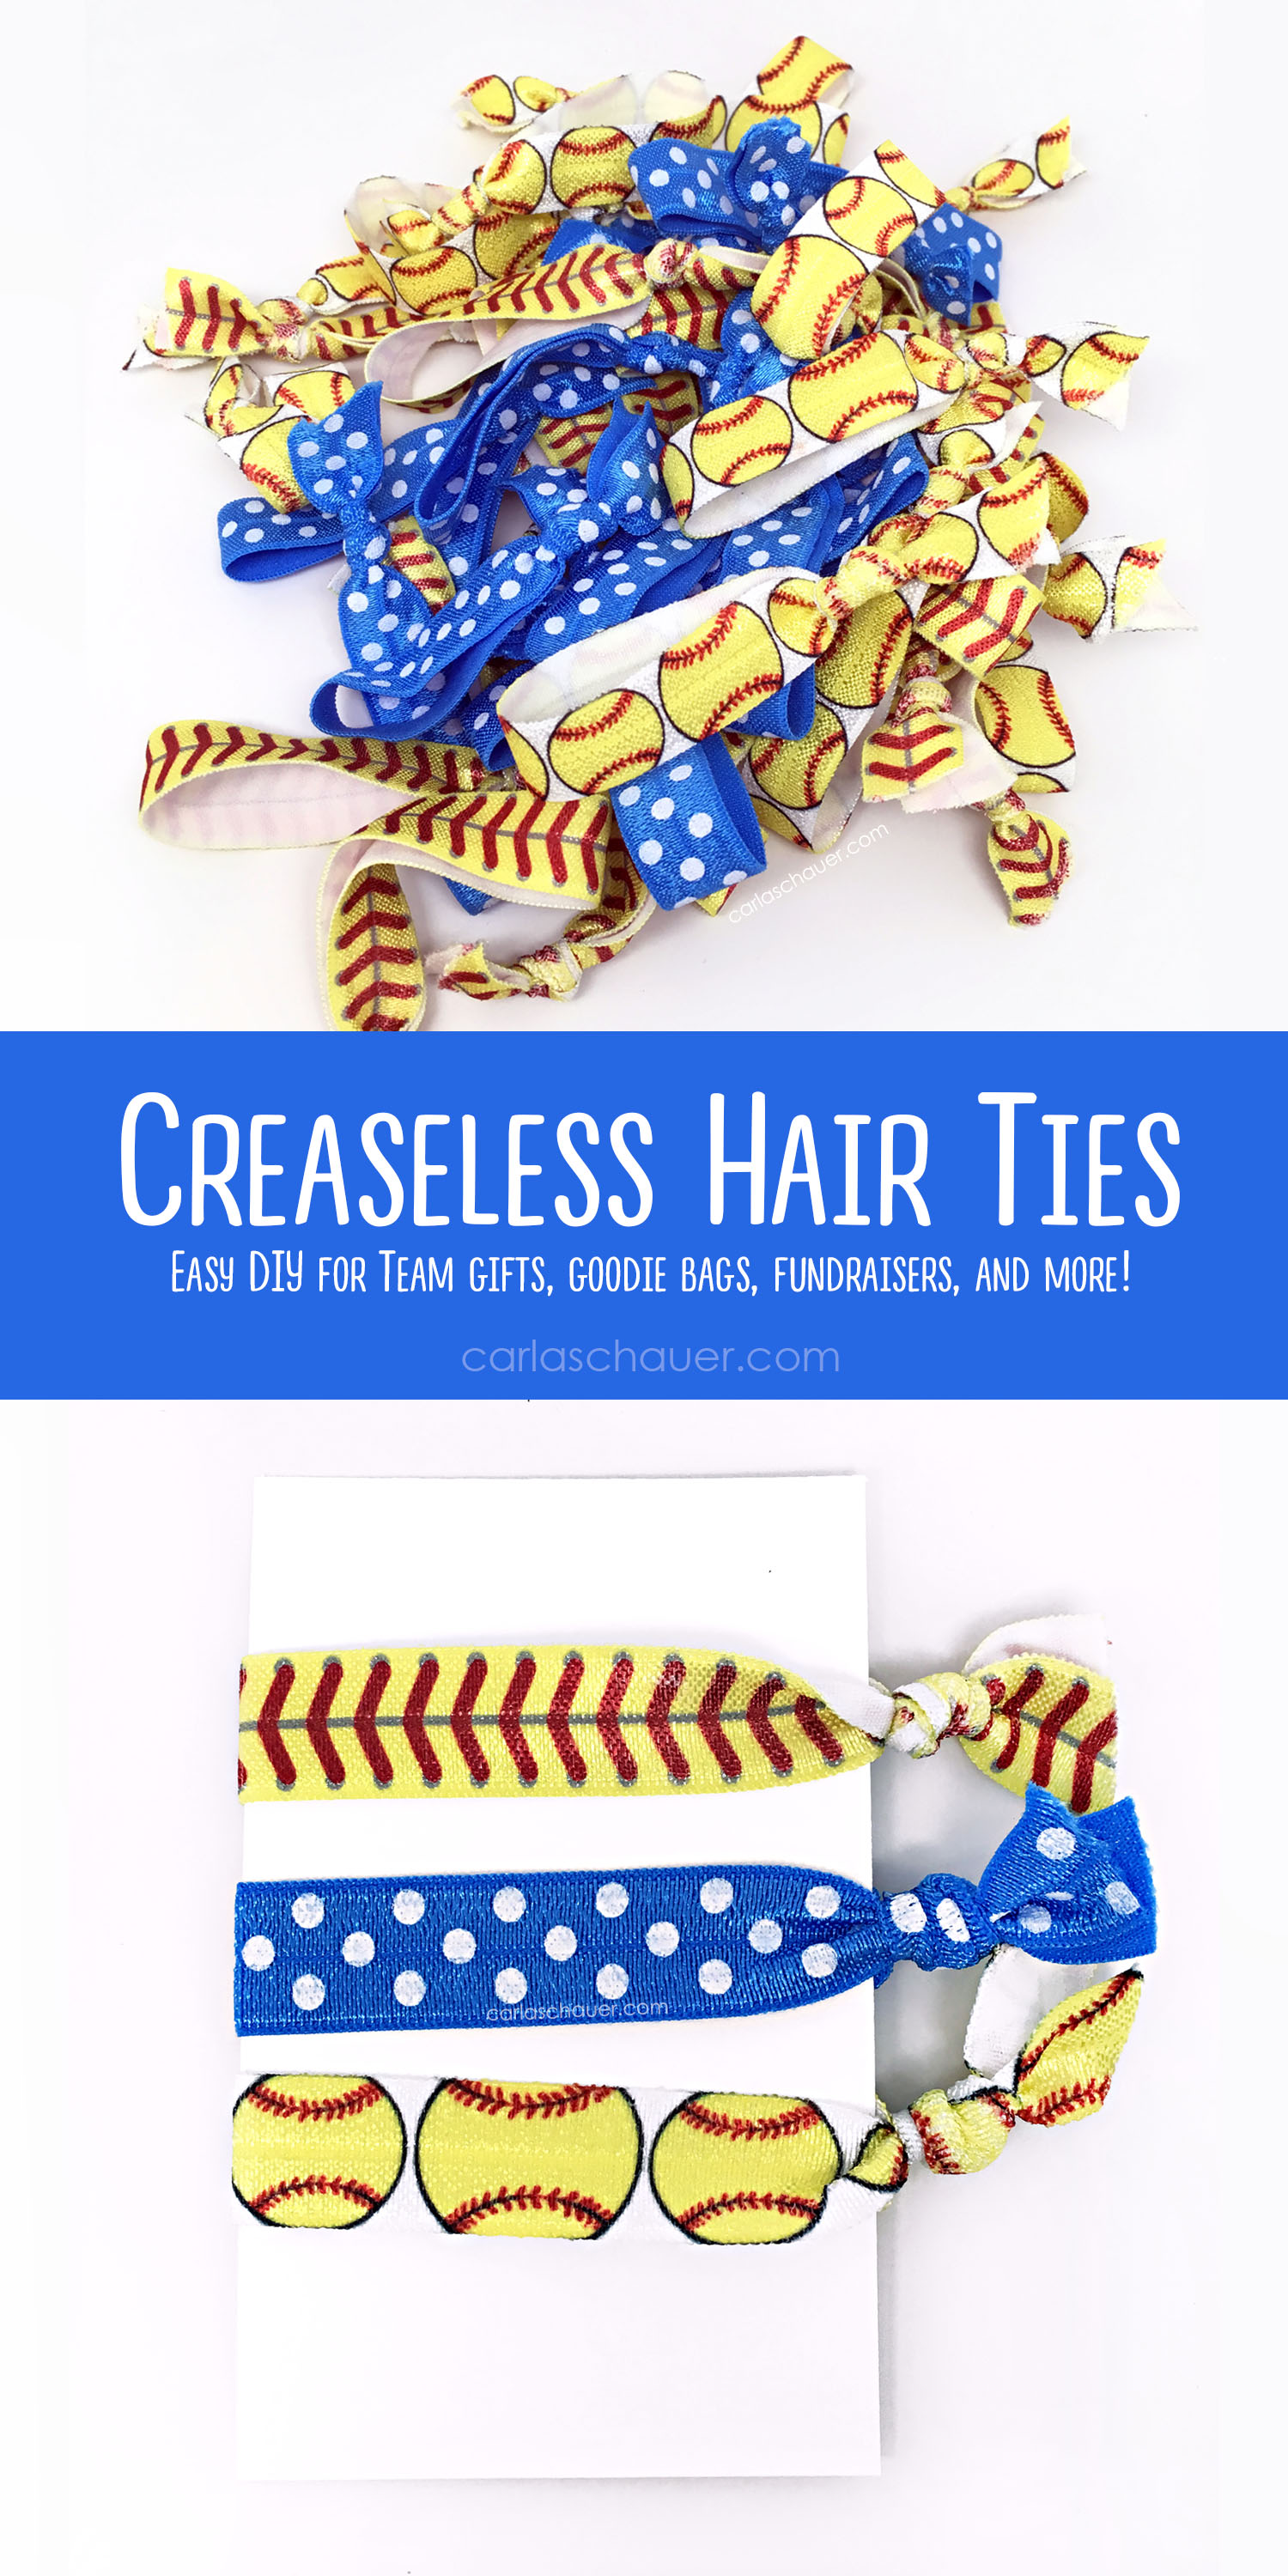 Softball no-crease hair ties pin image.